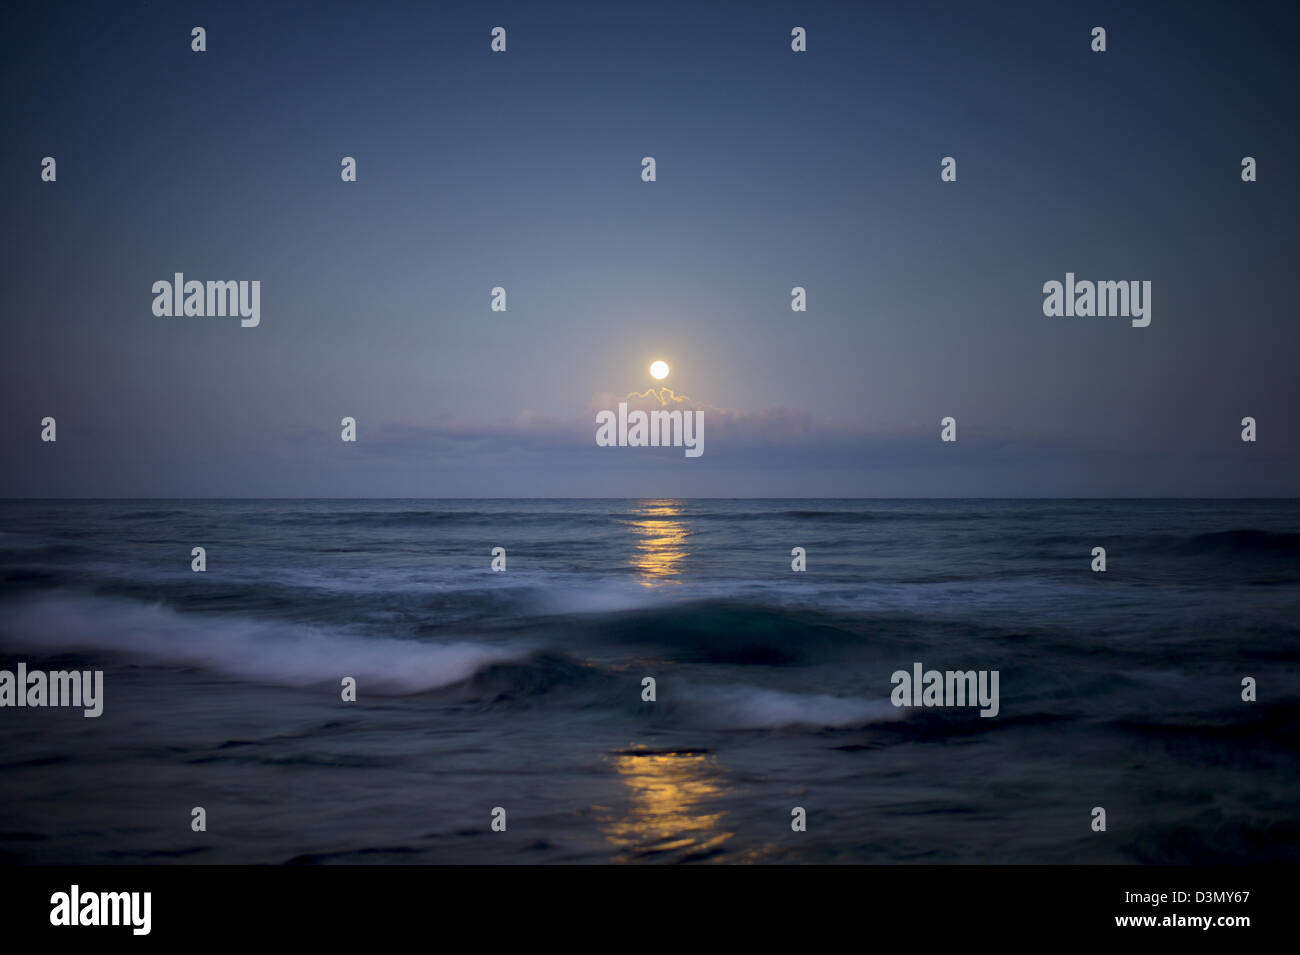 La lune. New York, la grande île. Photo Stock